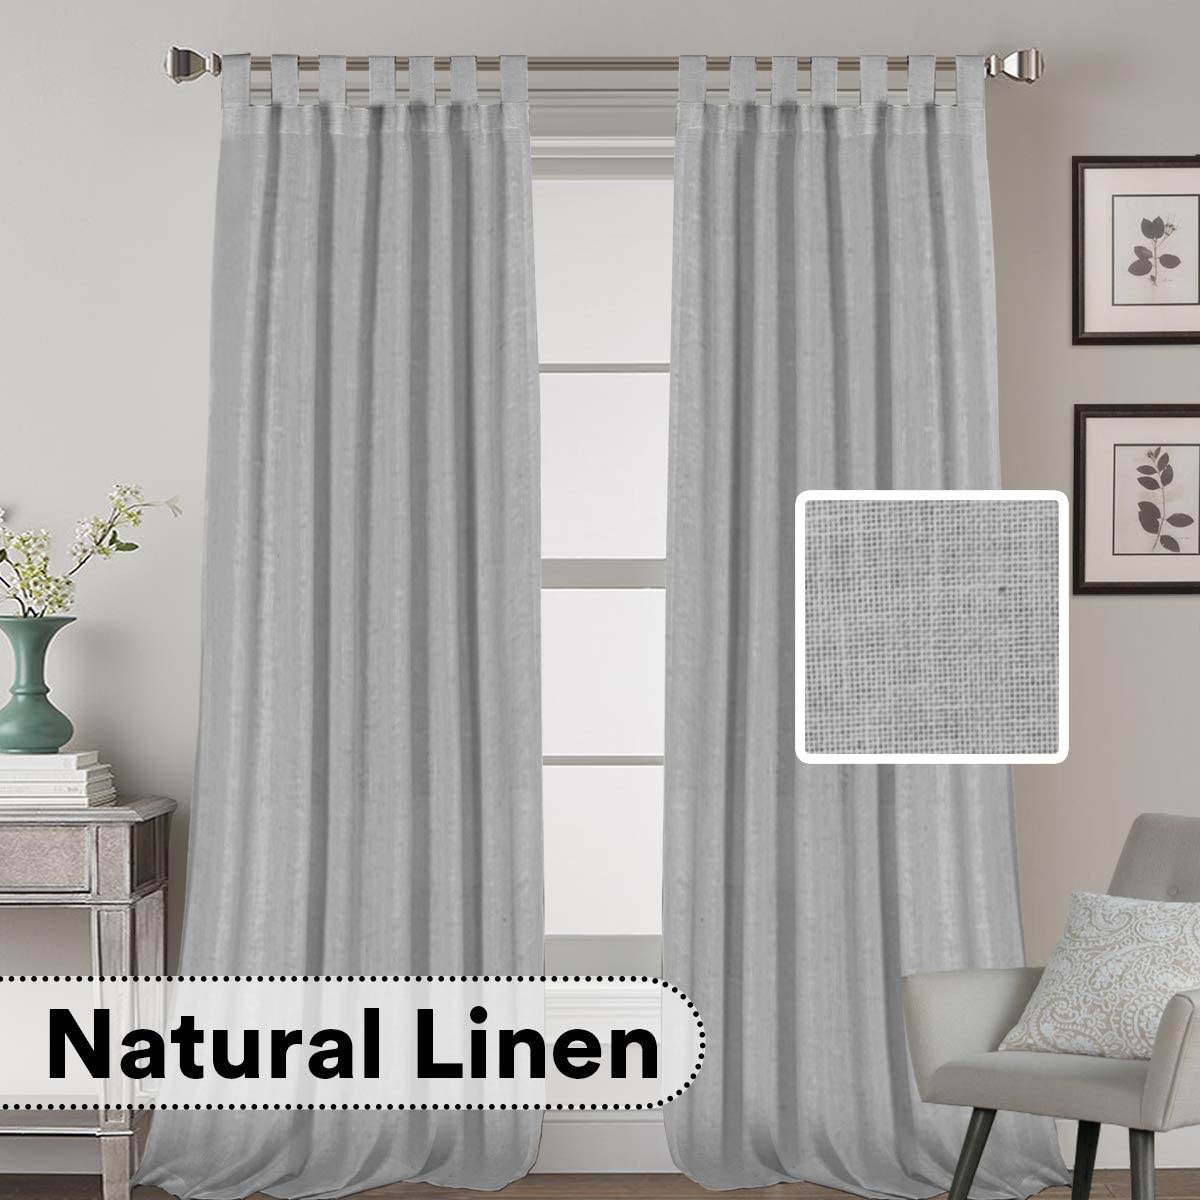 H.VERSAILTEX 2 Pack Ultra Luxurious High Woven Linen Elegant Curtain Panels Light Reducing Privacy Panels Drapes, Tab Top Curtain Set, Extra Long 52×108-Inch, Dove